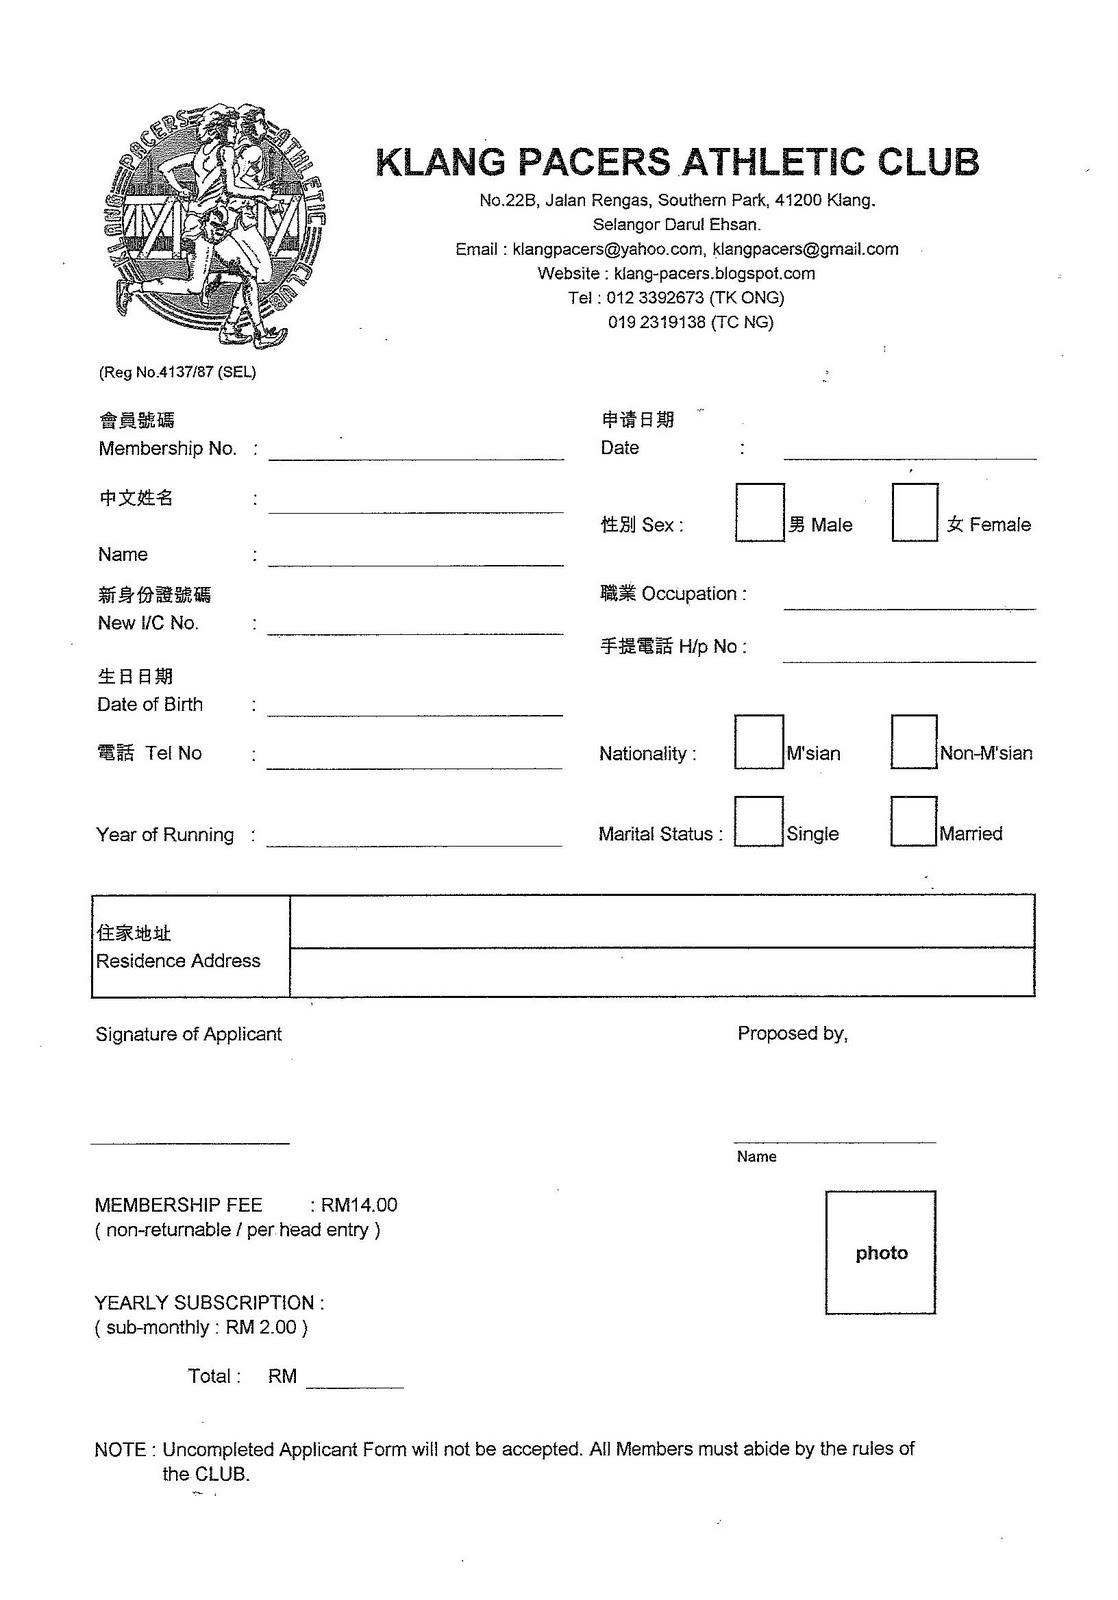 Club Application Form Template 03 sept 2010 membership form